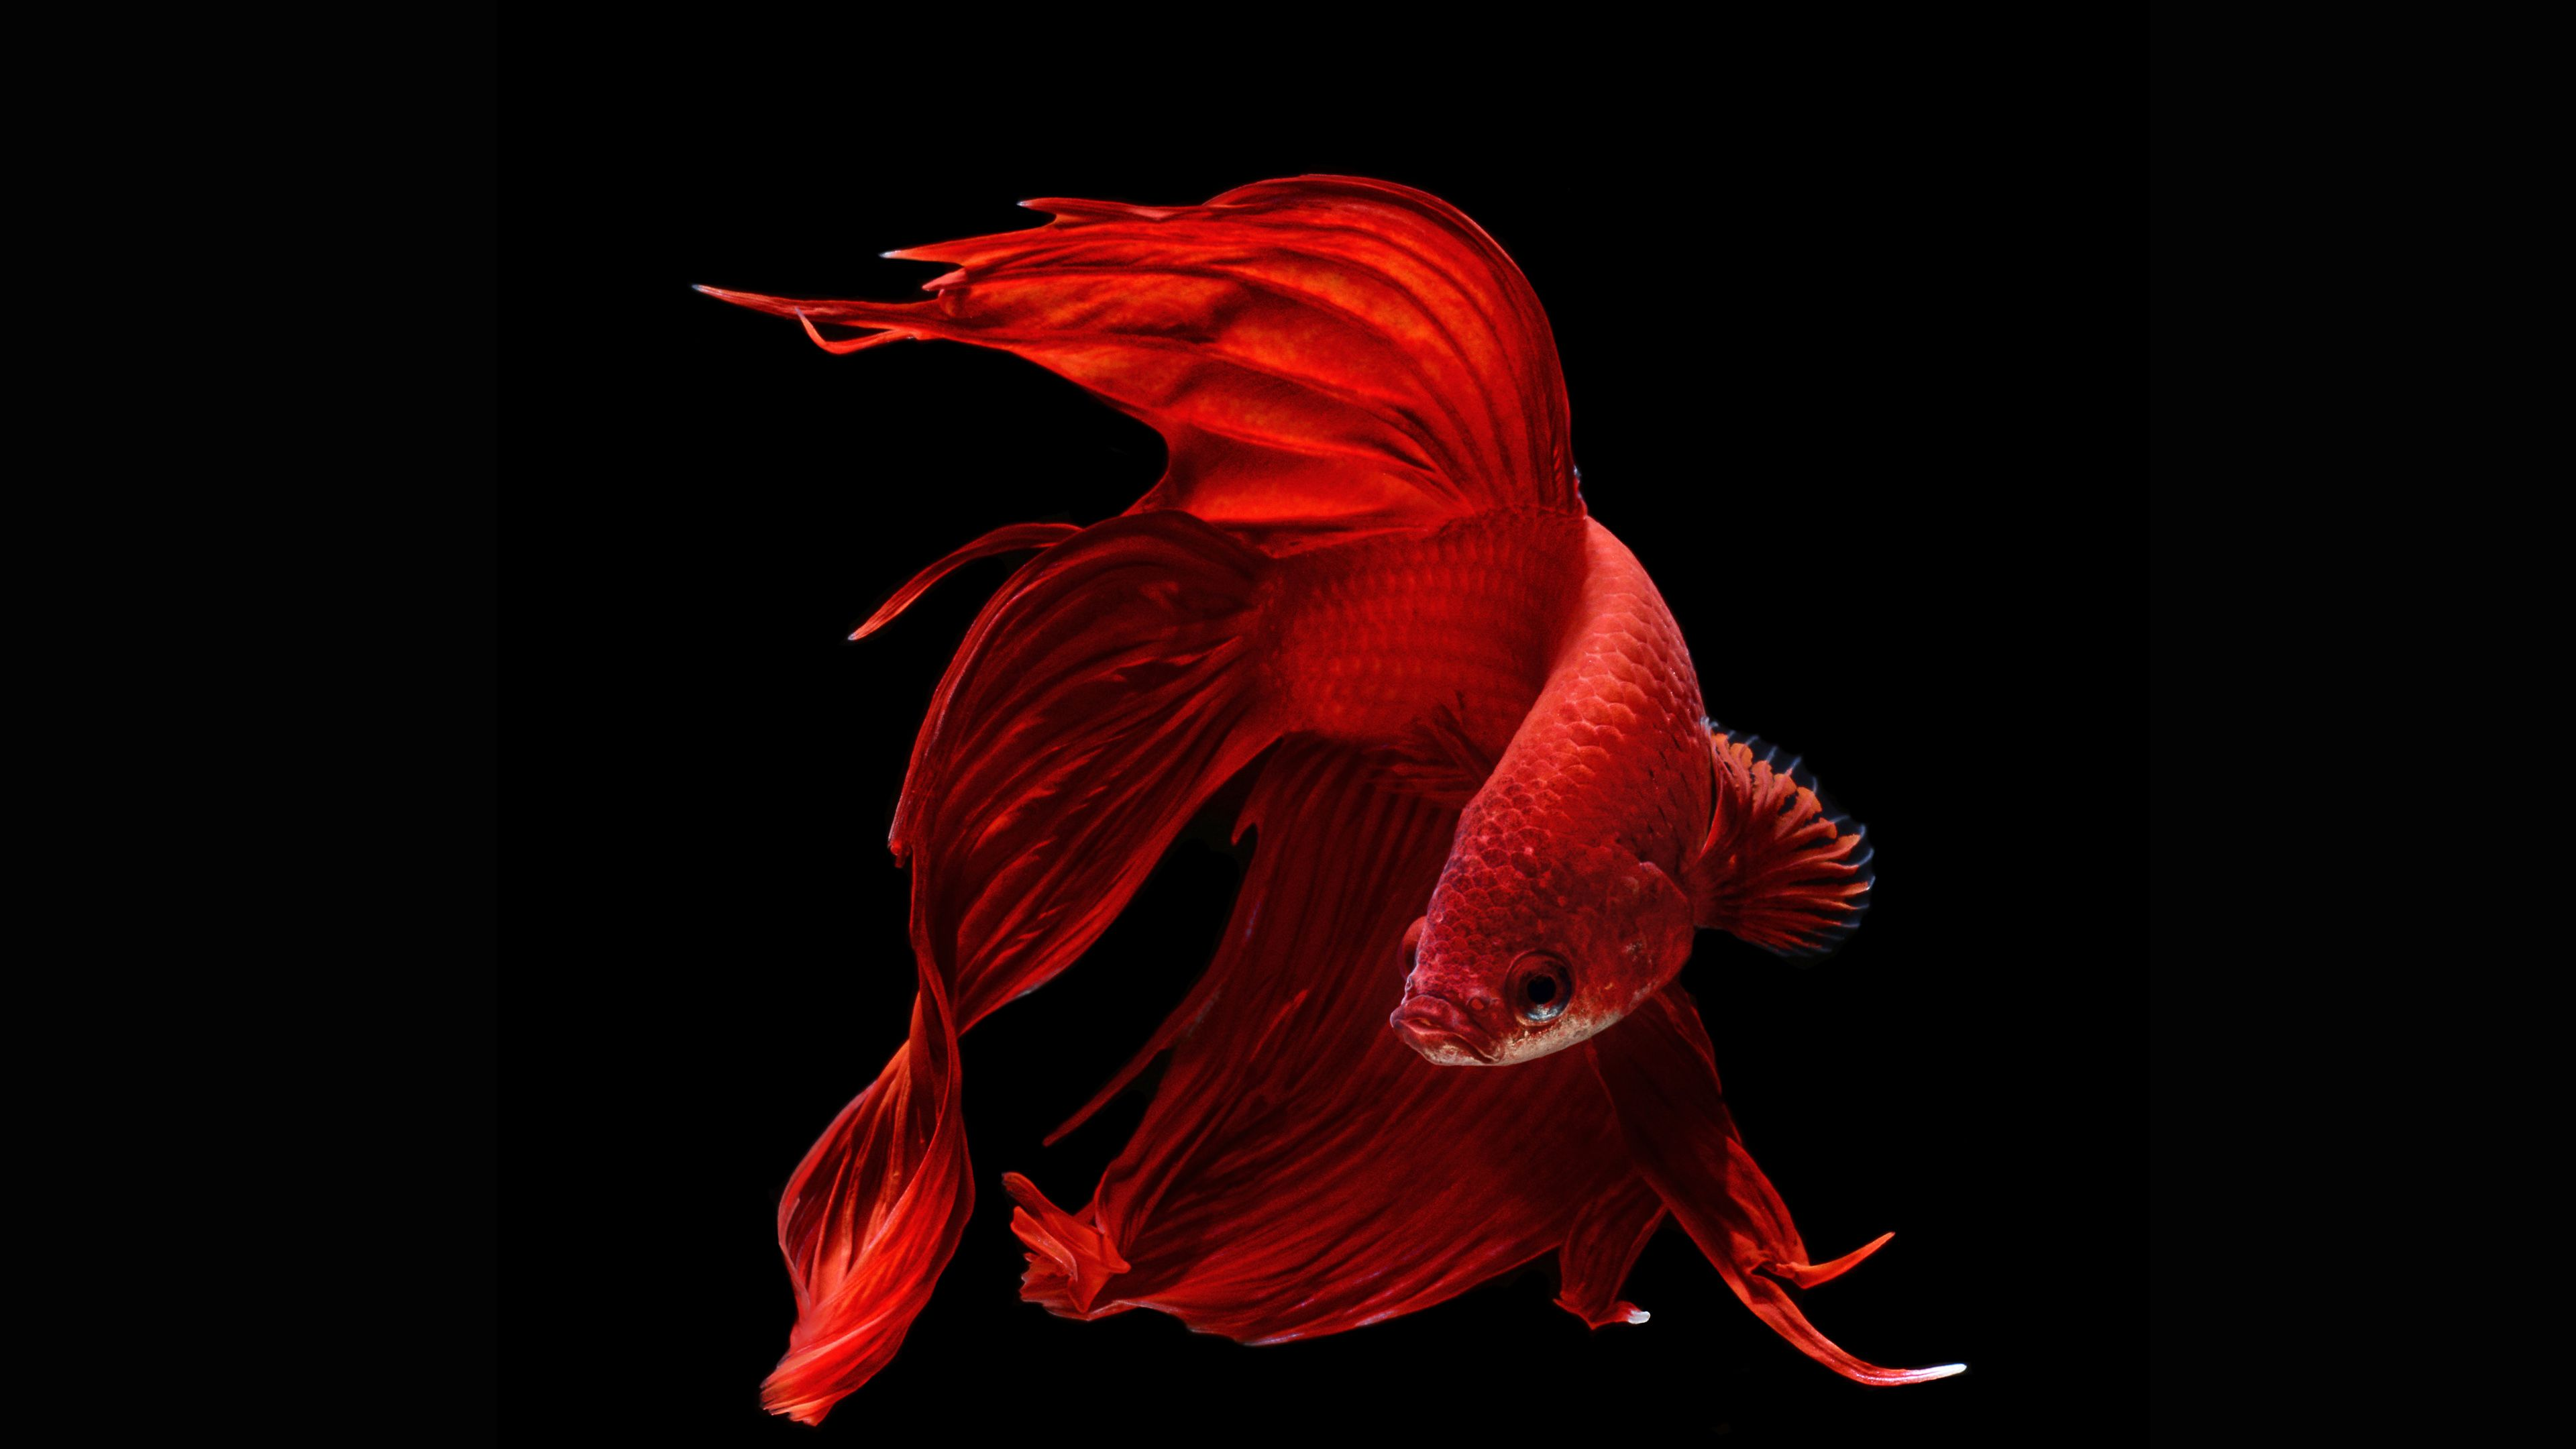 3840x2160 20 Siamese Fighting Fish HD Wallpapers | Background Images ...